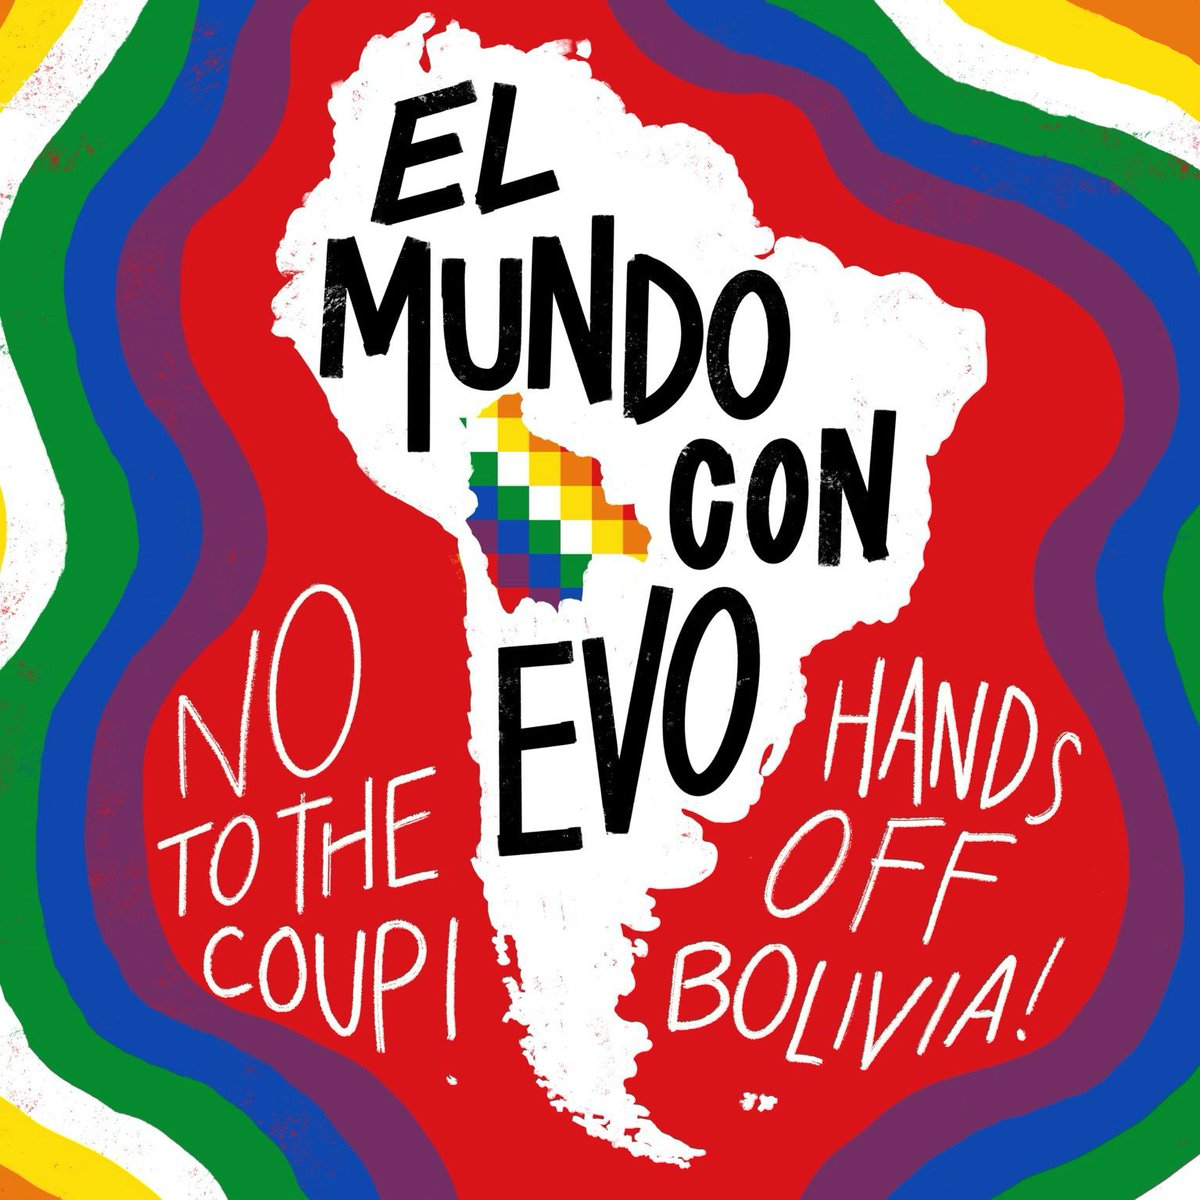 A new MIT study found that there was no fraud in Bolivia's elections last October, a claim that was used by the US & others to justify supporting the coup that removed President Evo Morales and put in place an unelected right-wing, anti-Indigenous government.  #ElMundoConEvo <br>http://pic.twitter.com/HwbvgCjYiz